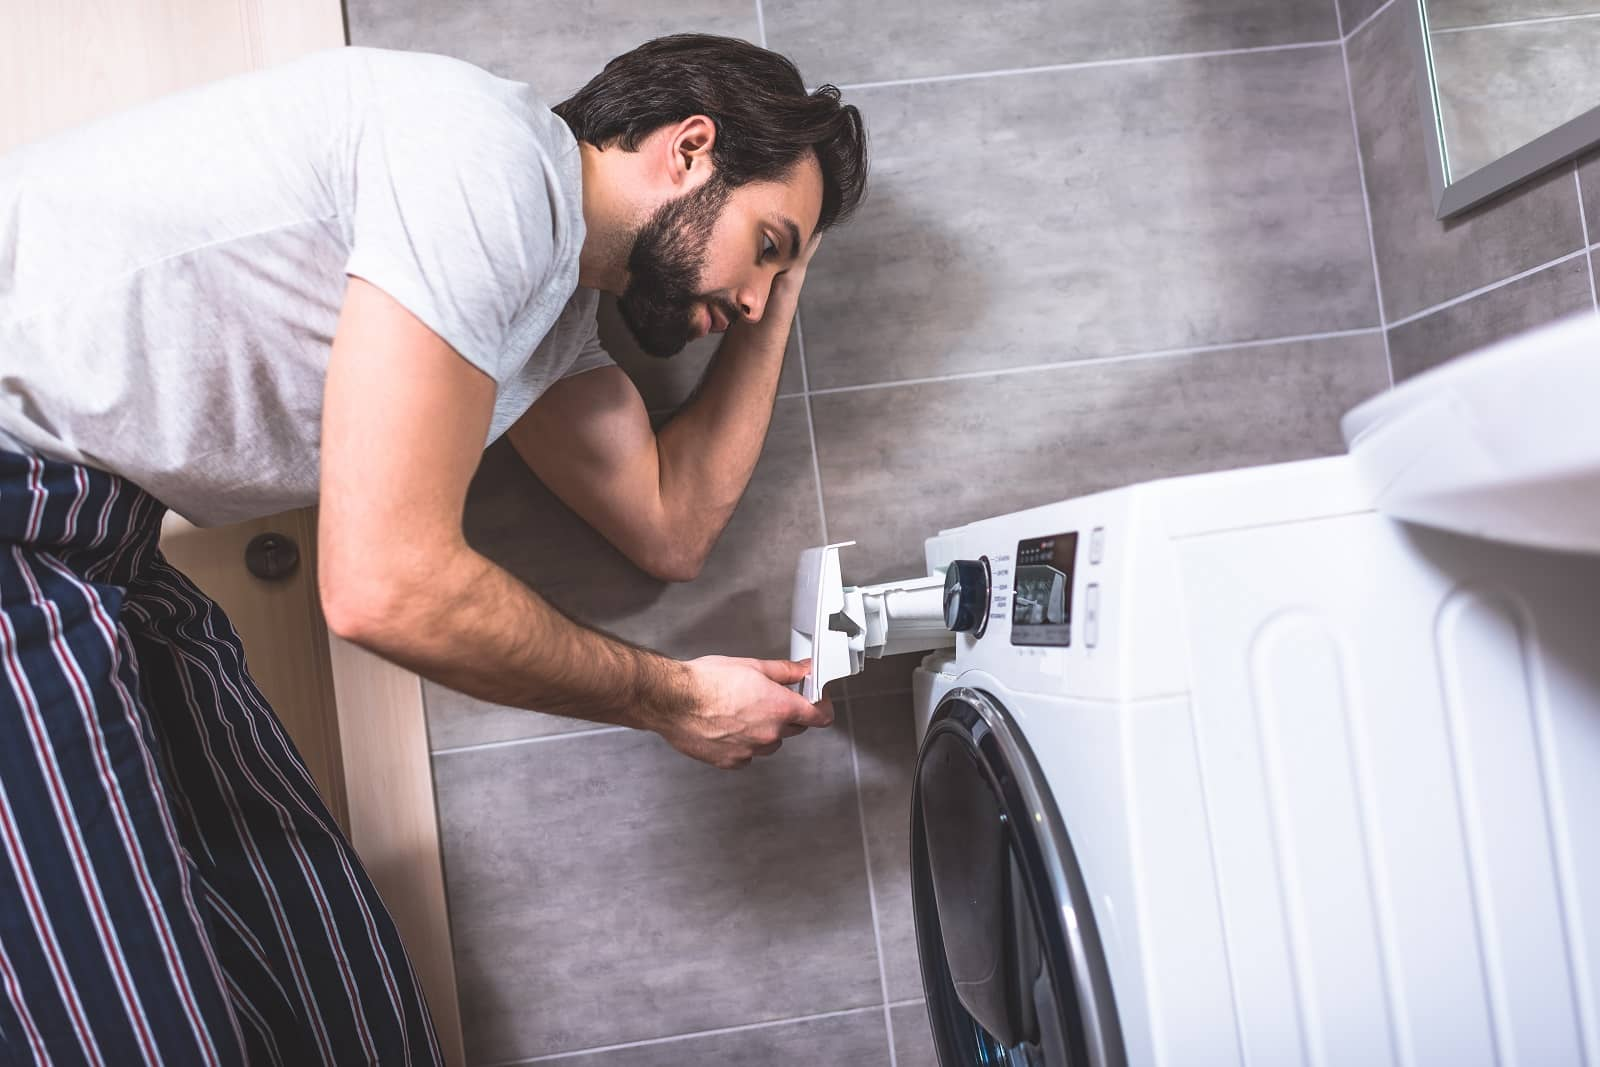 https://devices4home.com/wp-content/uploads/2019/05/how-to-use-a-washing-machine-min.jpg